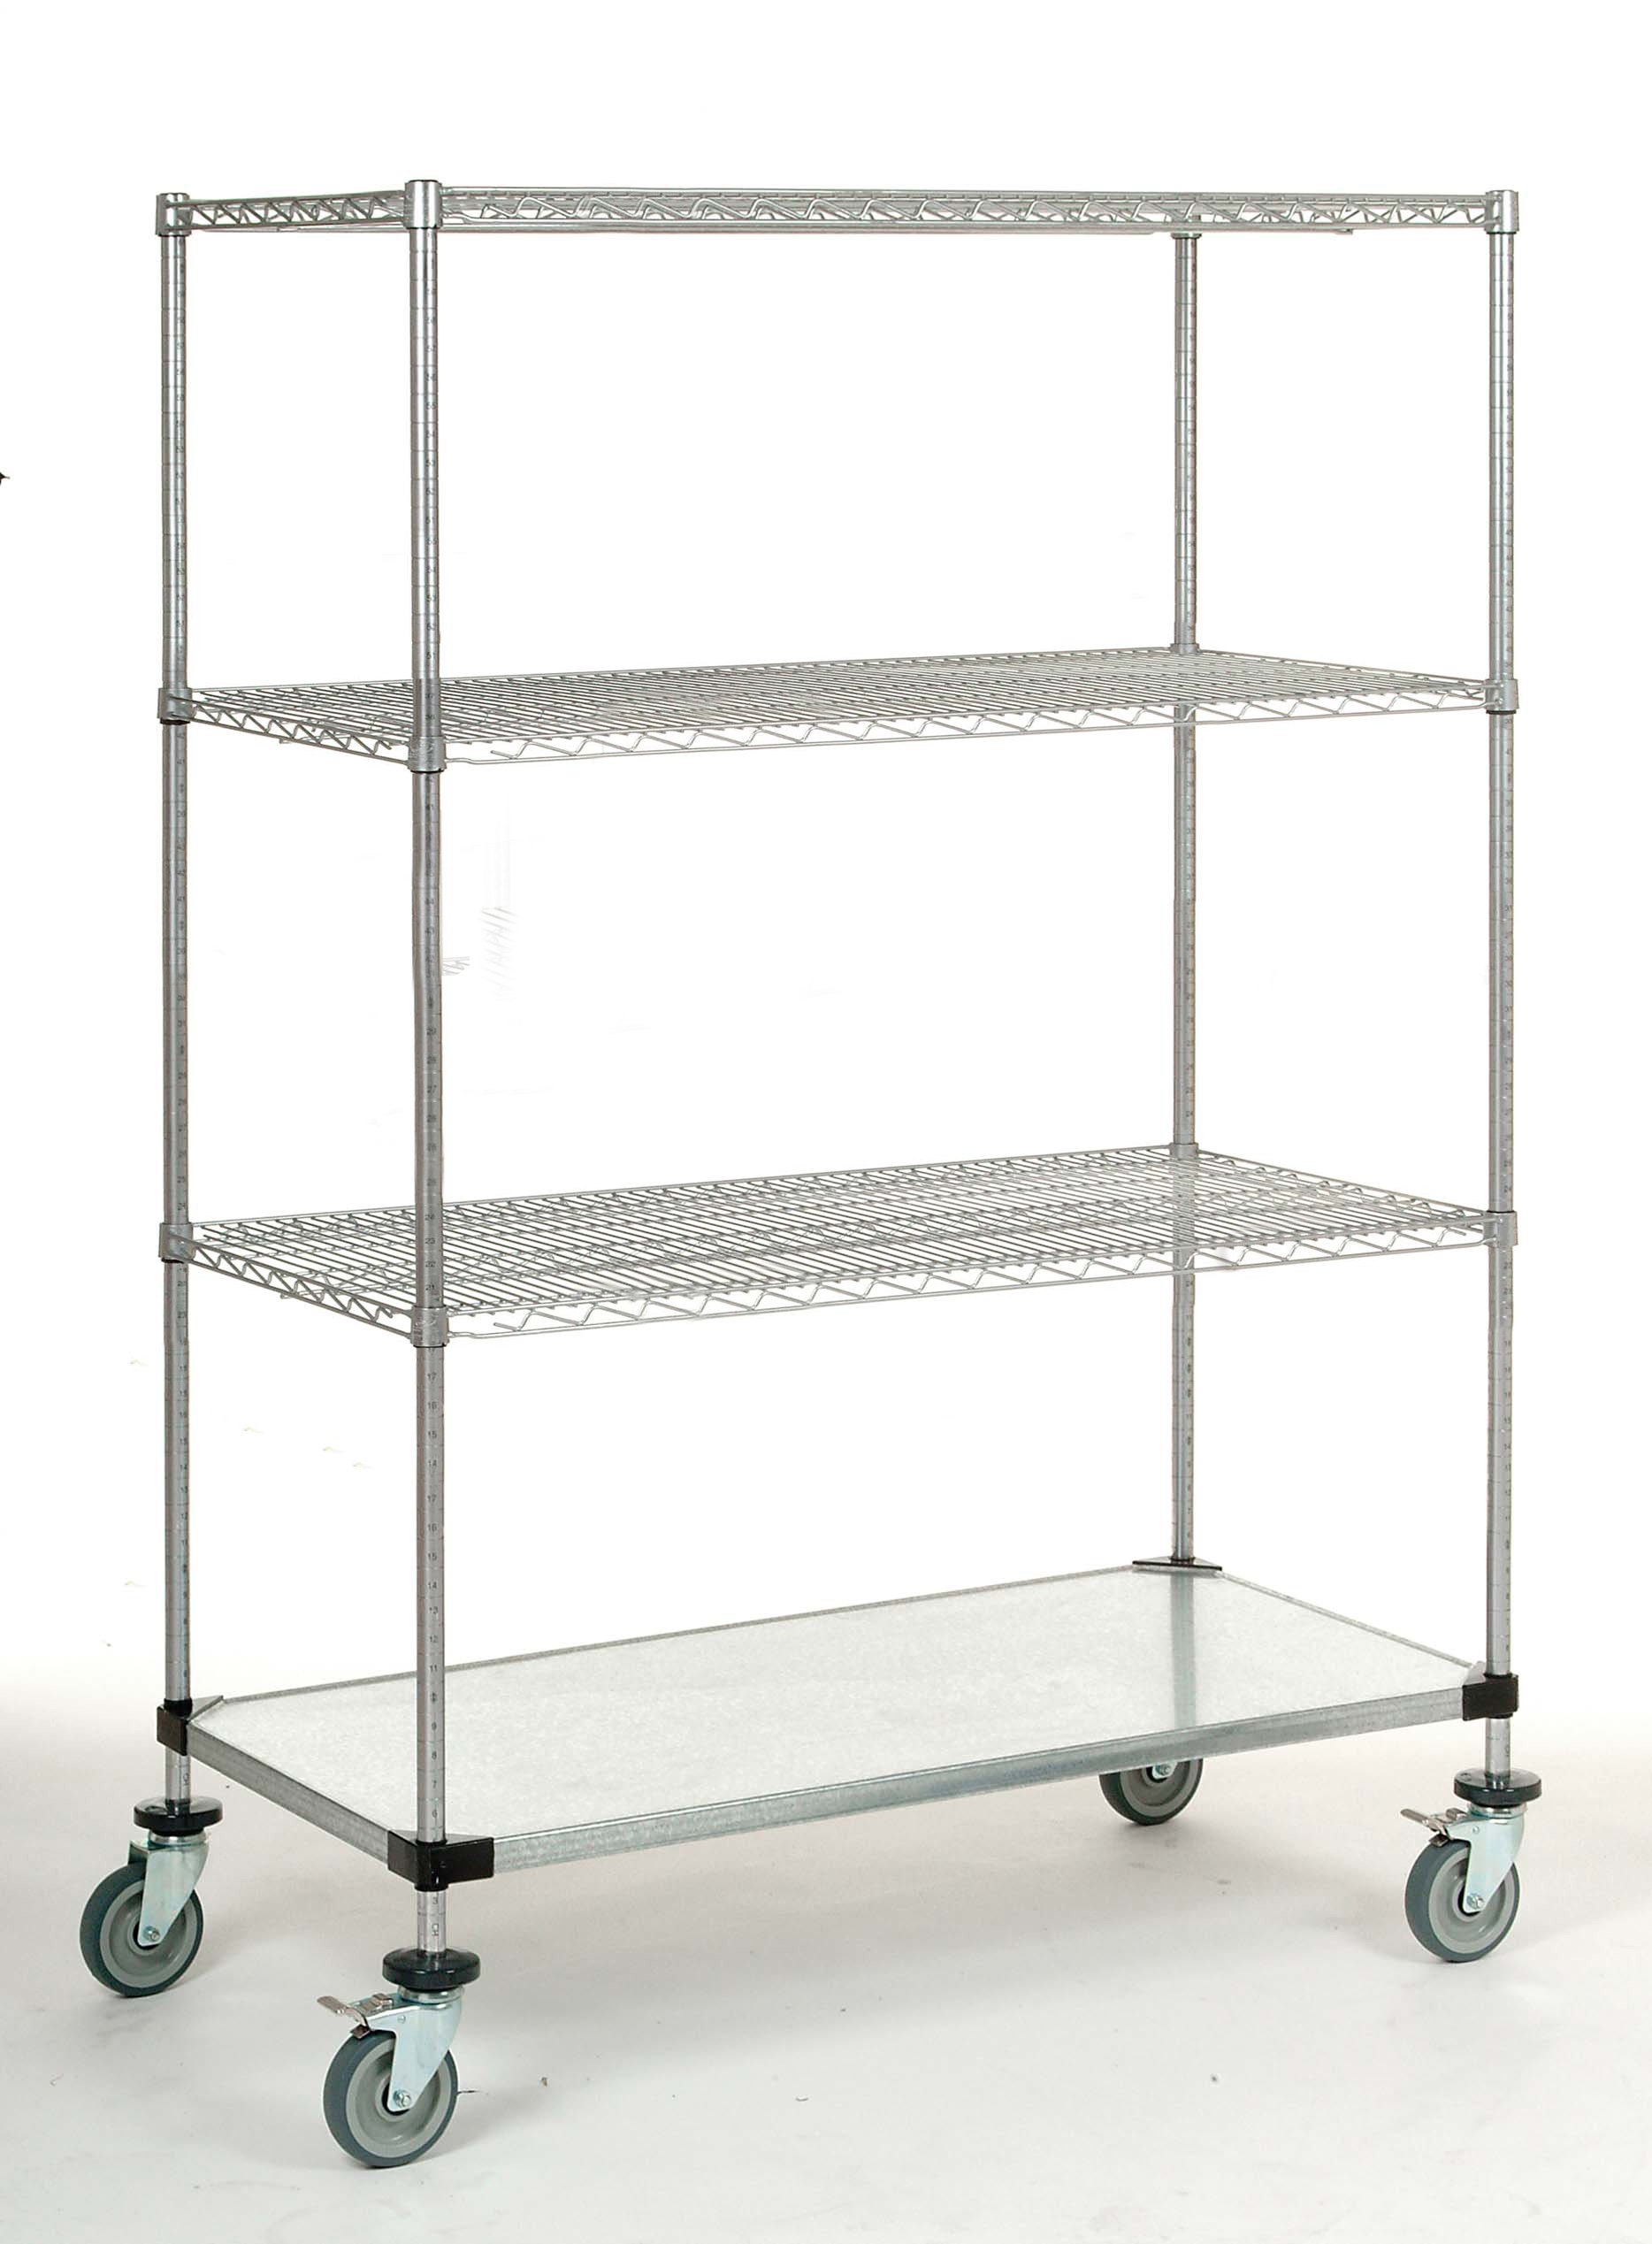 24'' x 60'' x 60'' Mobile Shelving Unit with an 800 lb Capacity, 3 Chrome Wire Shelves and 1 Galvanized Steel Shelf